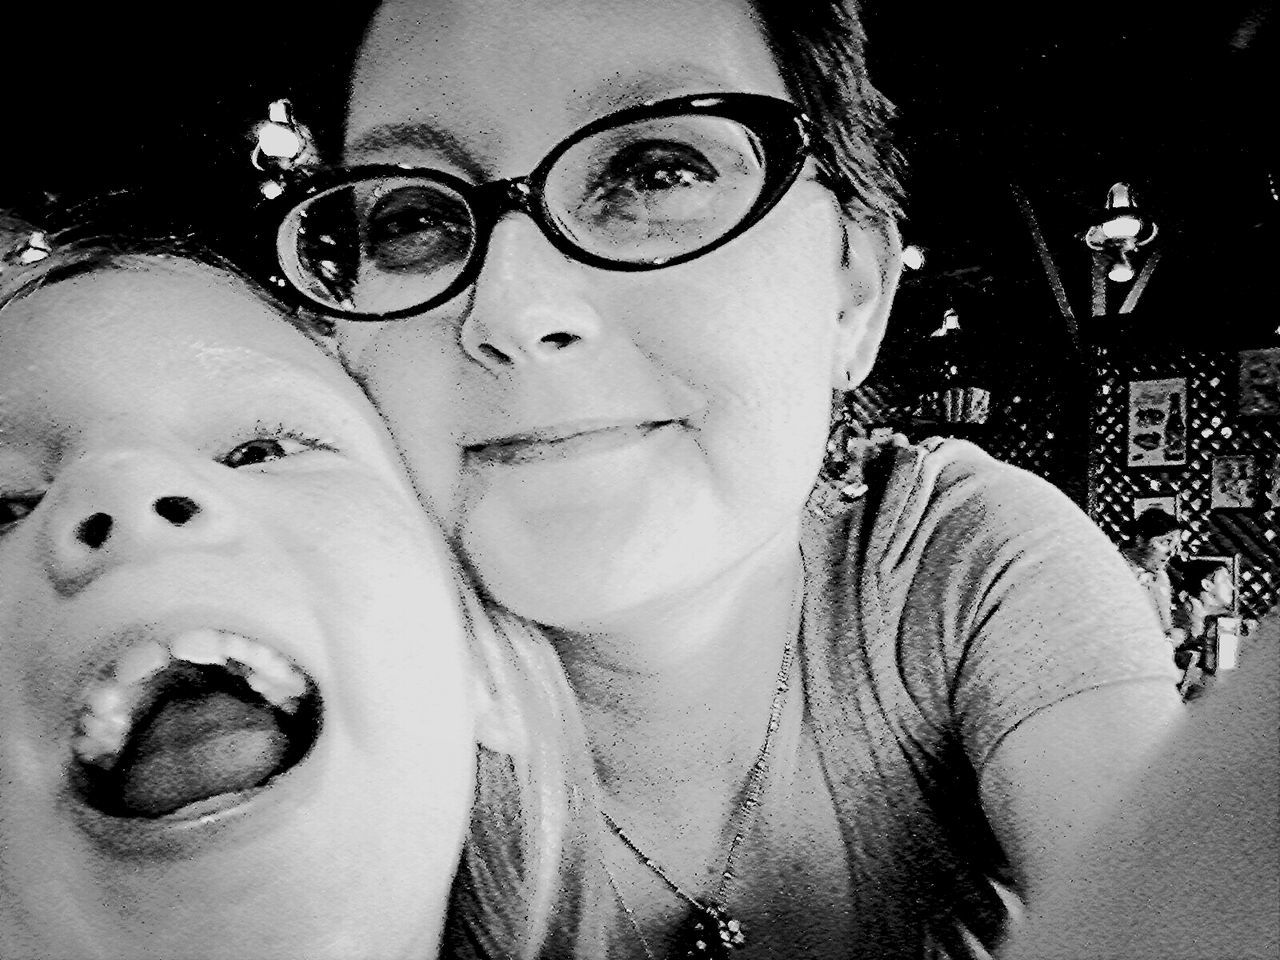 At dinner with my baby girl I Love My Girl  Family Portrait Monochrome